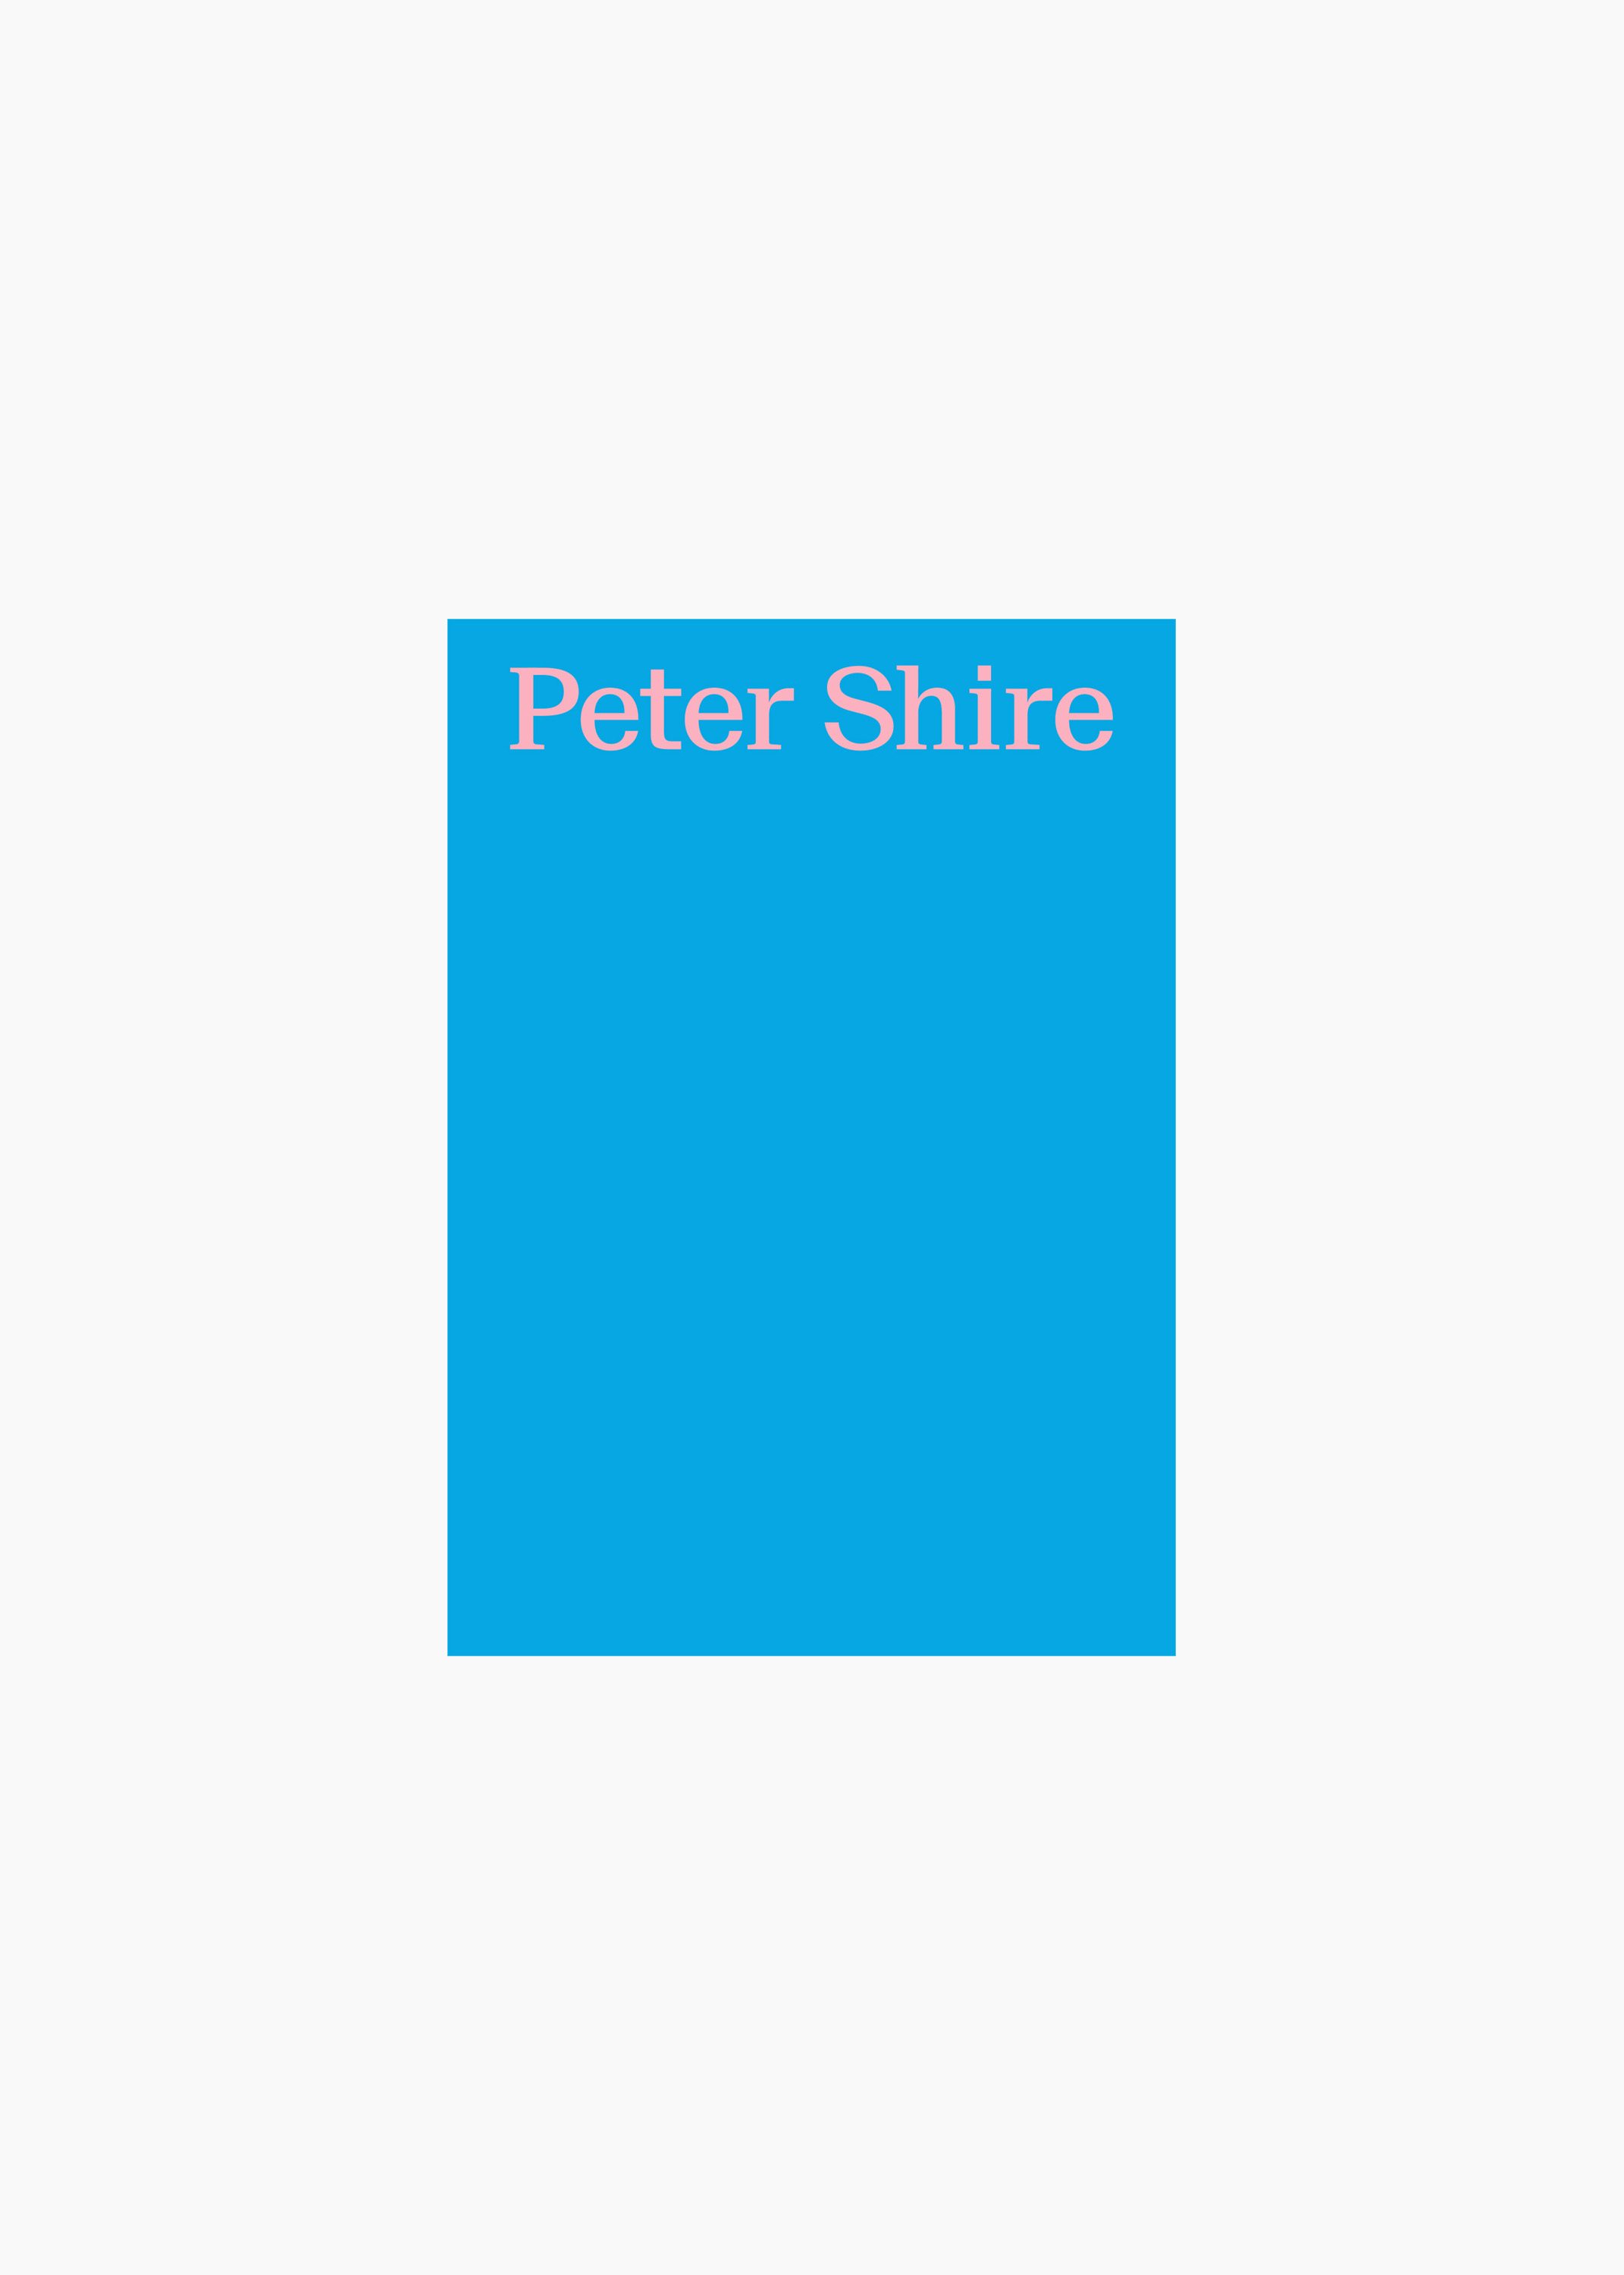 Peter ShirE - TEAPOT IN TEMPEST, ON THE SPOT!  48 PAGES 16.5 X 23.5 CM  EDITION OF 700  ISBN 978-618-82096-0-2  OMMU 2015  €25  add to cart